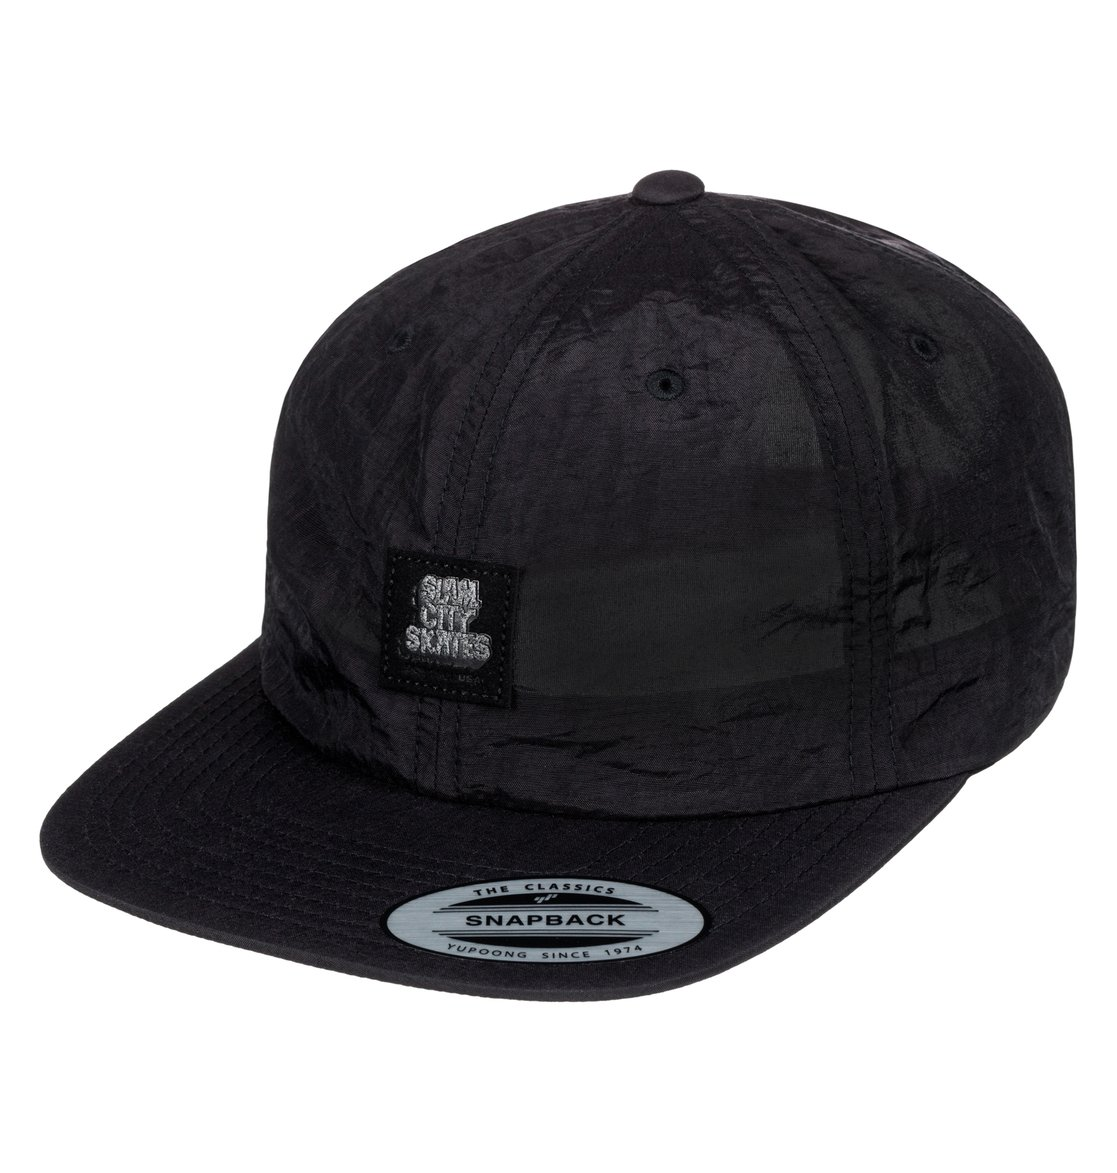 slam city casquette snapback 3613372578168 dc shoes. Black Bedroom Furniture Sets. Home Design Ideas